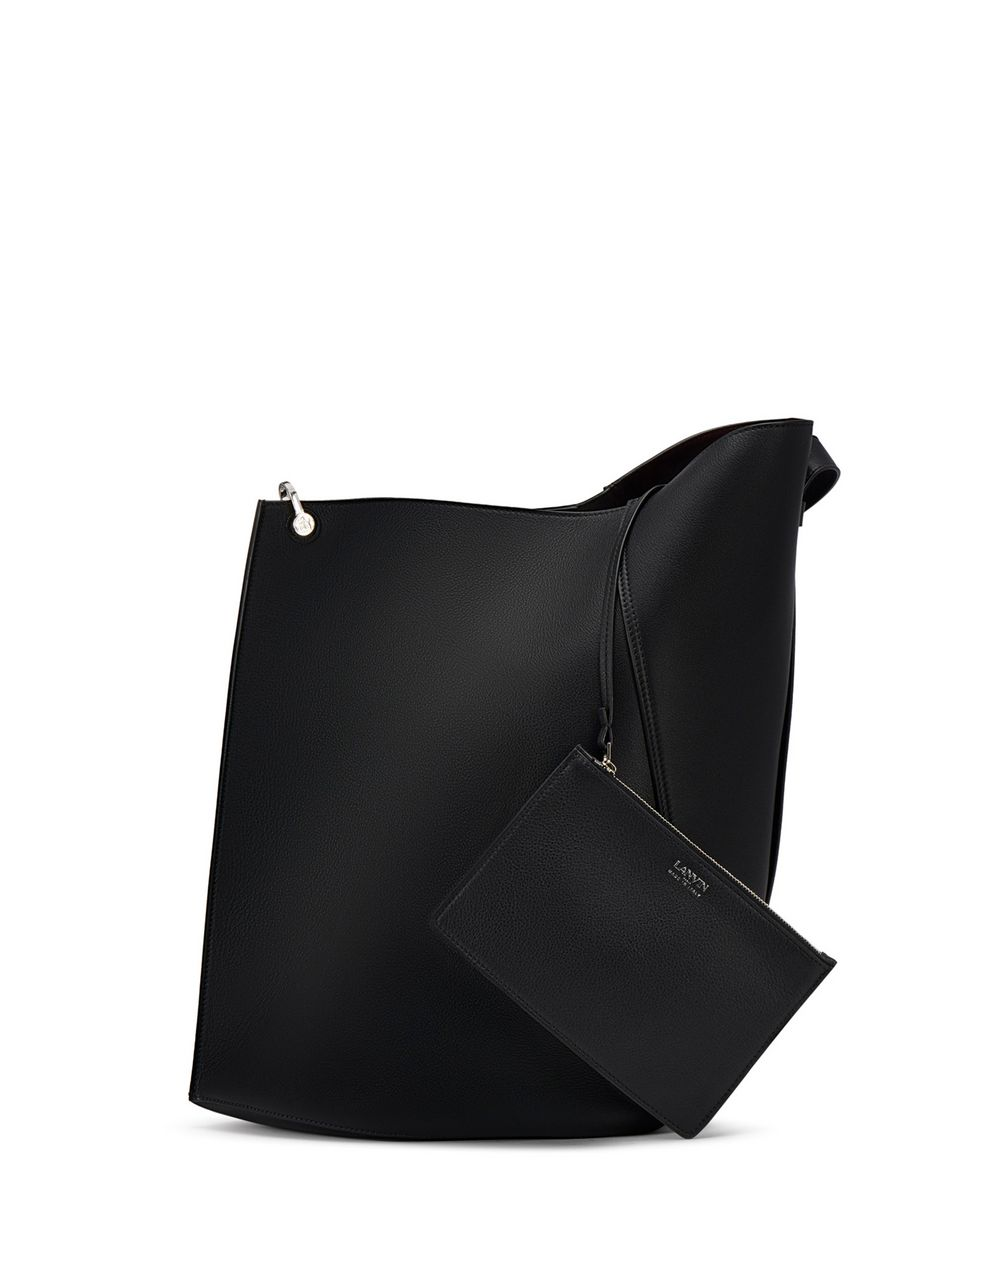 BLACK HOOK BAG - Lanvin